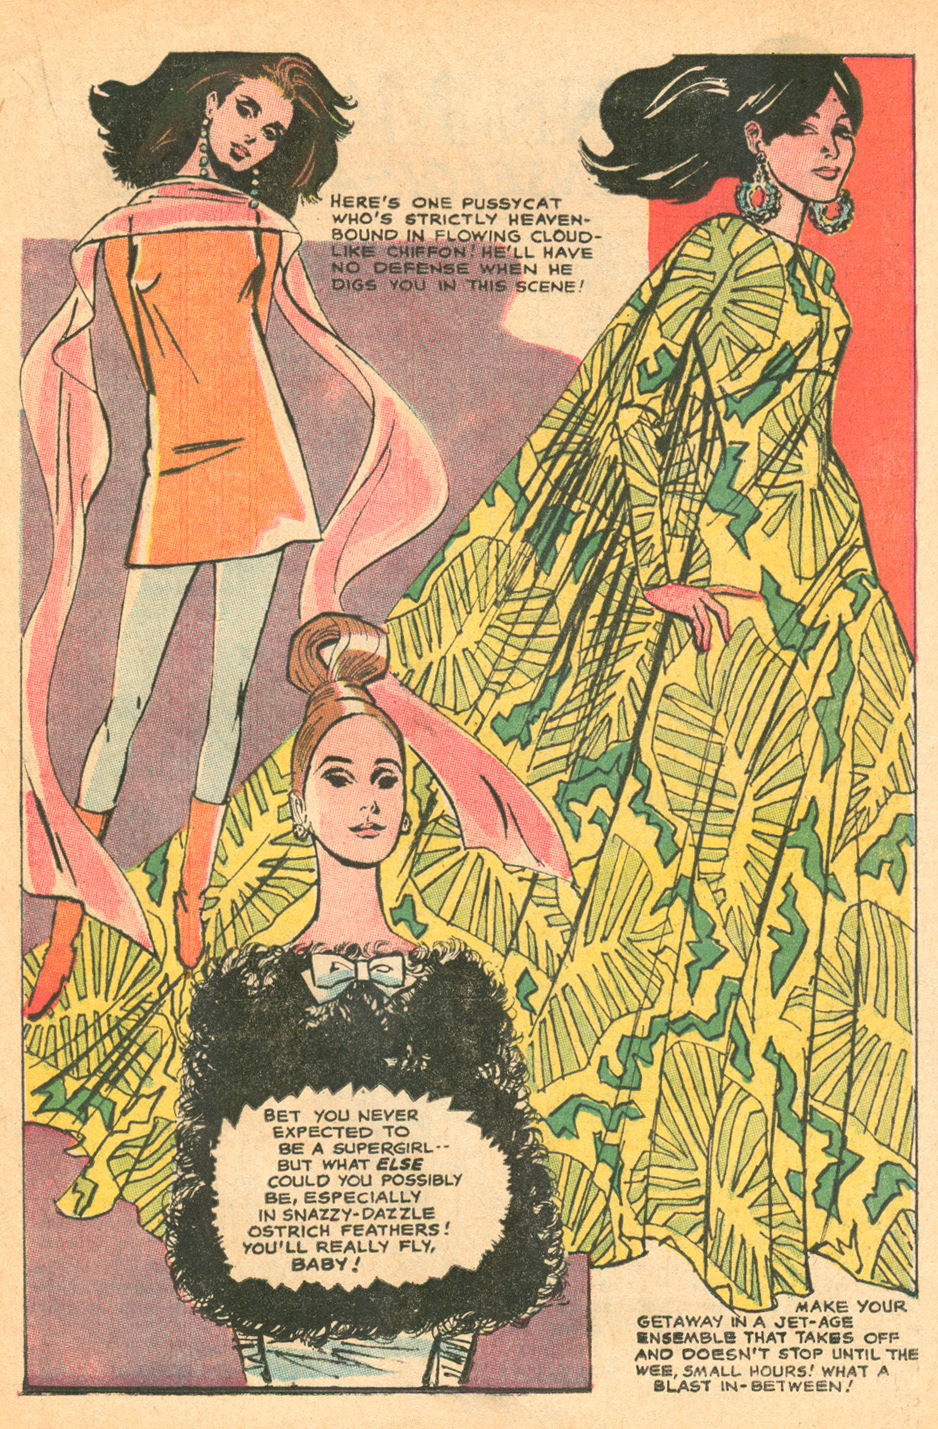 1960s fashion batman romance comic book tony abruzzo illustrator